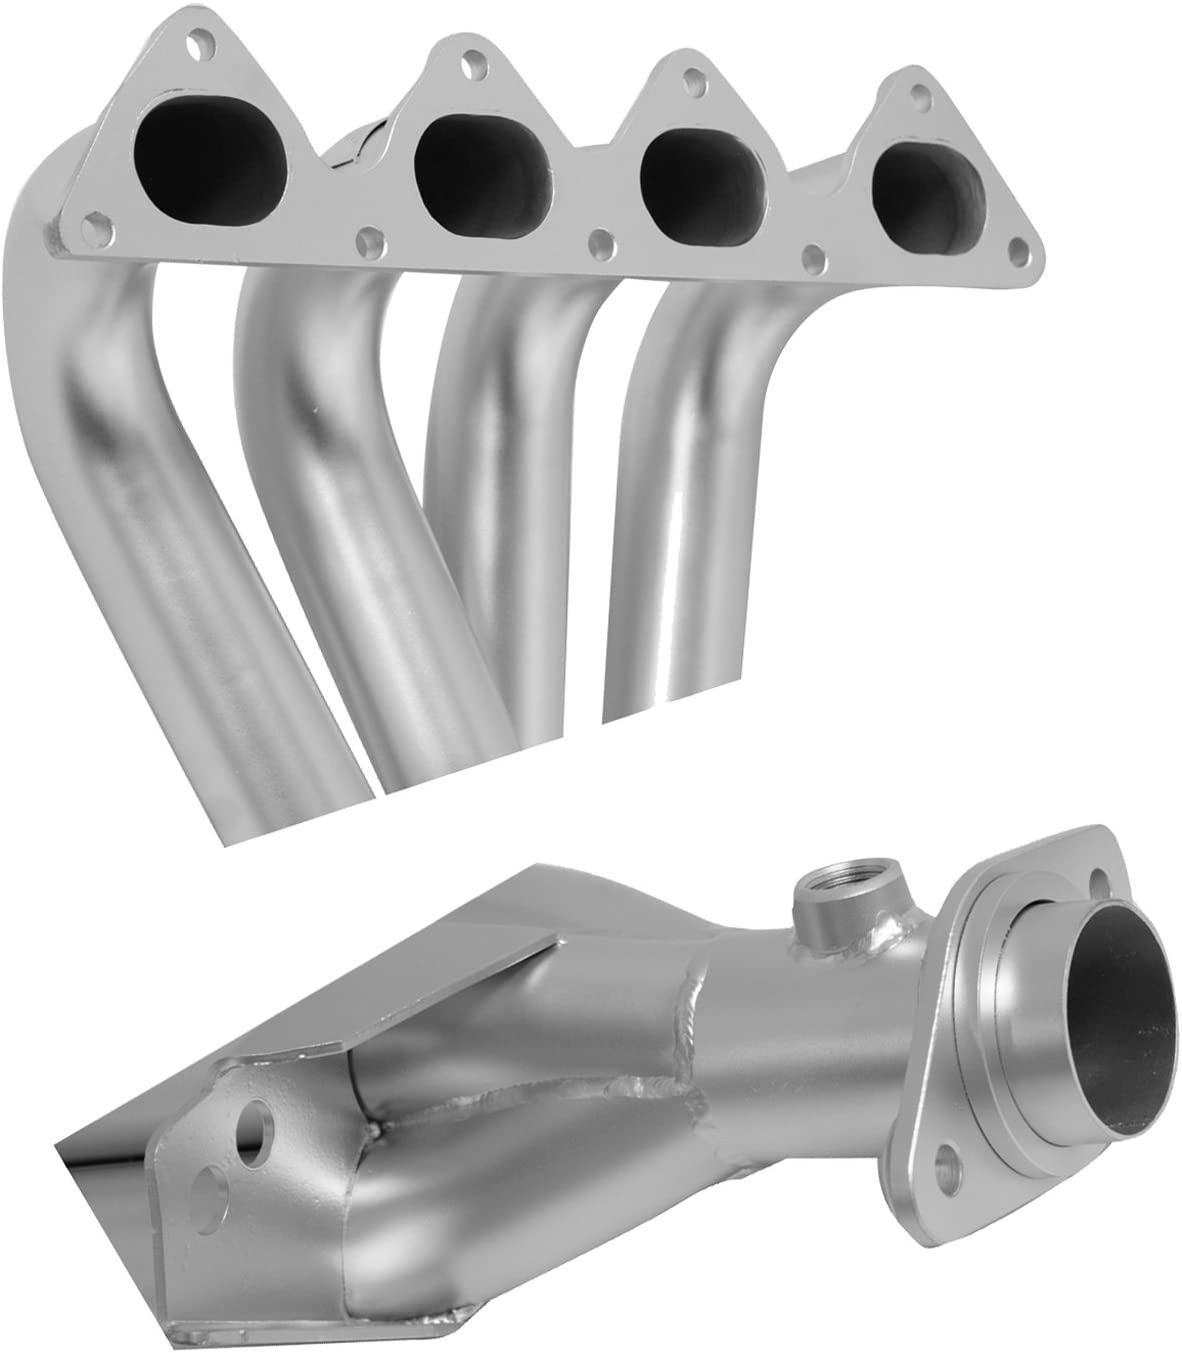 DC Sports AHC6606 Acura Integra RS//LS//GS 4-1 Header with Ceramic Coating Silver